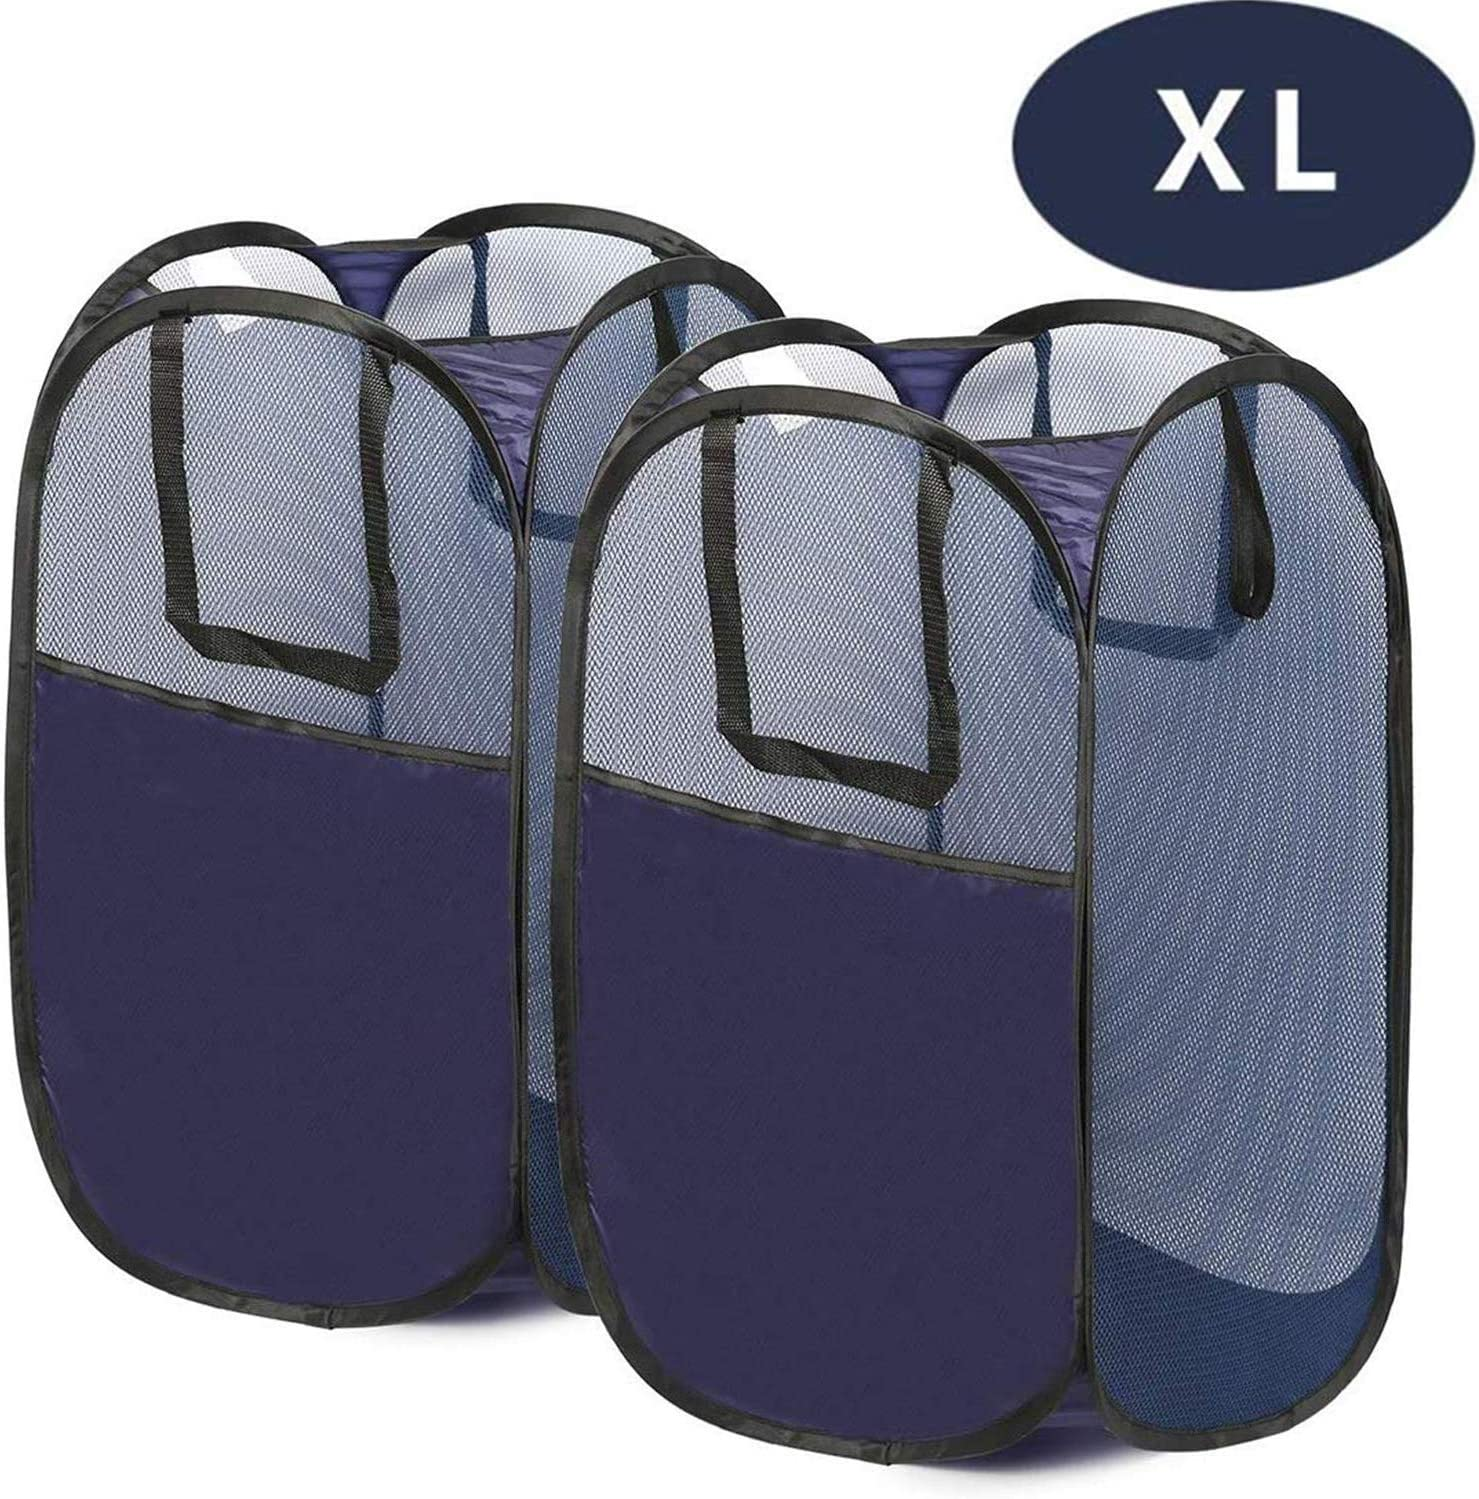 GANAMODA Mesh Laundry PopUp Hamper-Foldable Pop-Up Mesh Hamper with Reinforced Carry Handles, Collapsible for Storage and Easy to Open, Portable, 2 Pack, XL, Blue